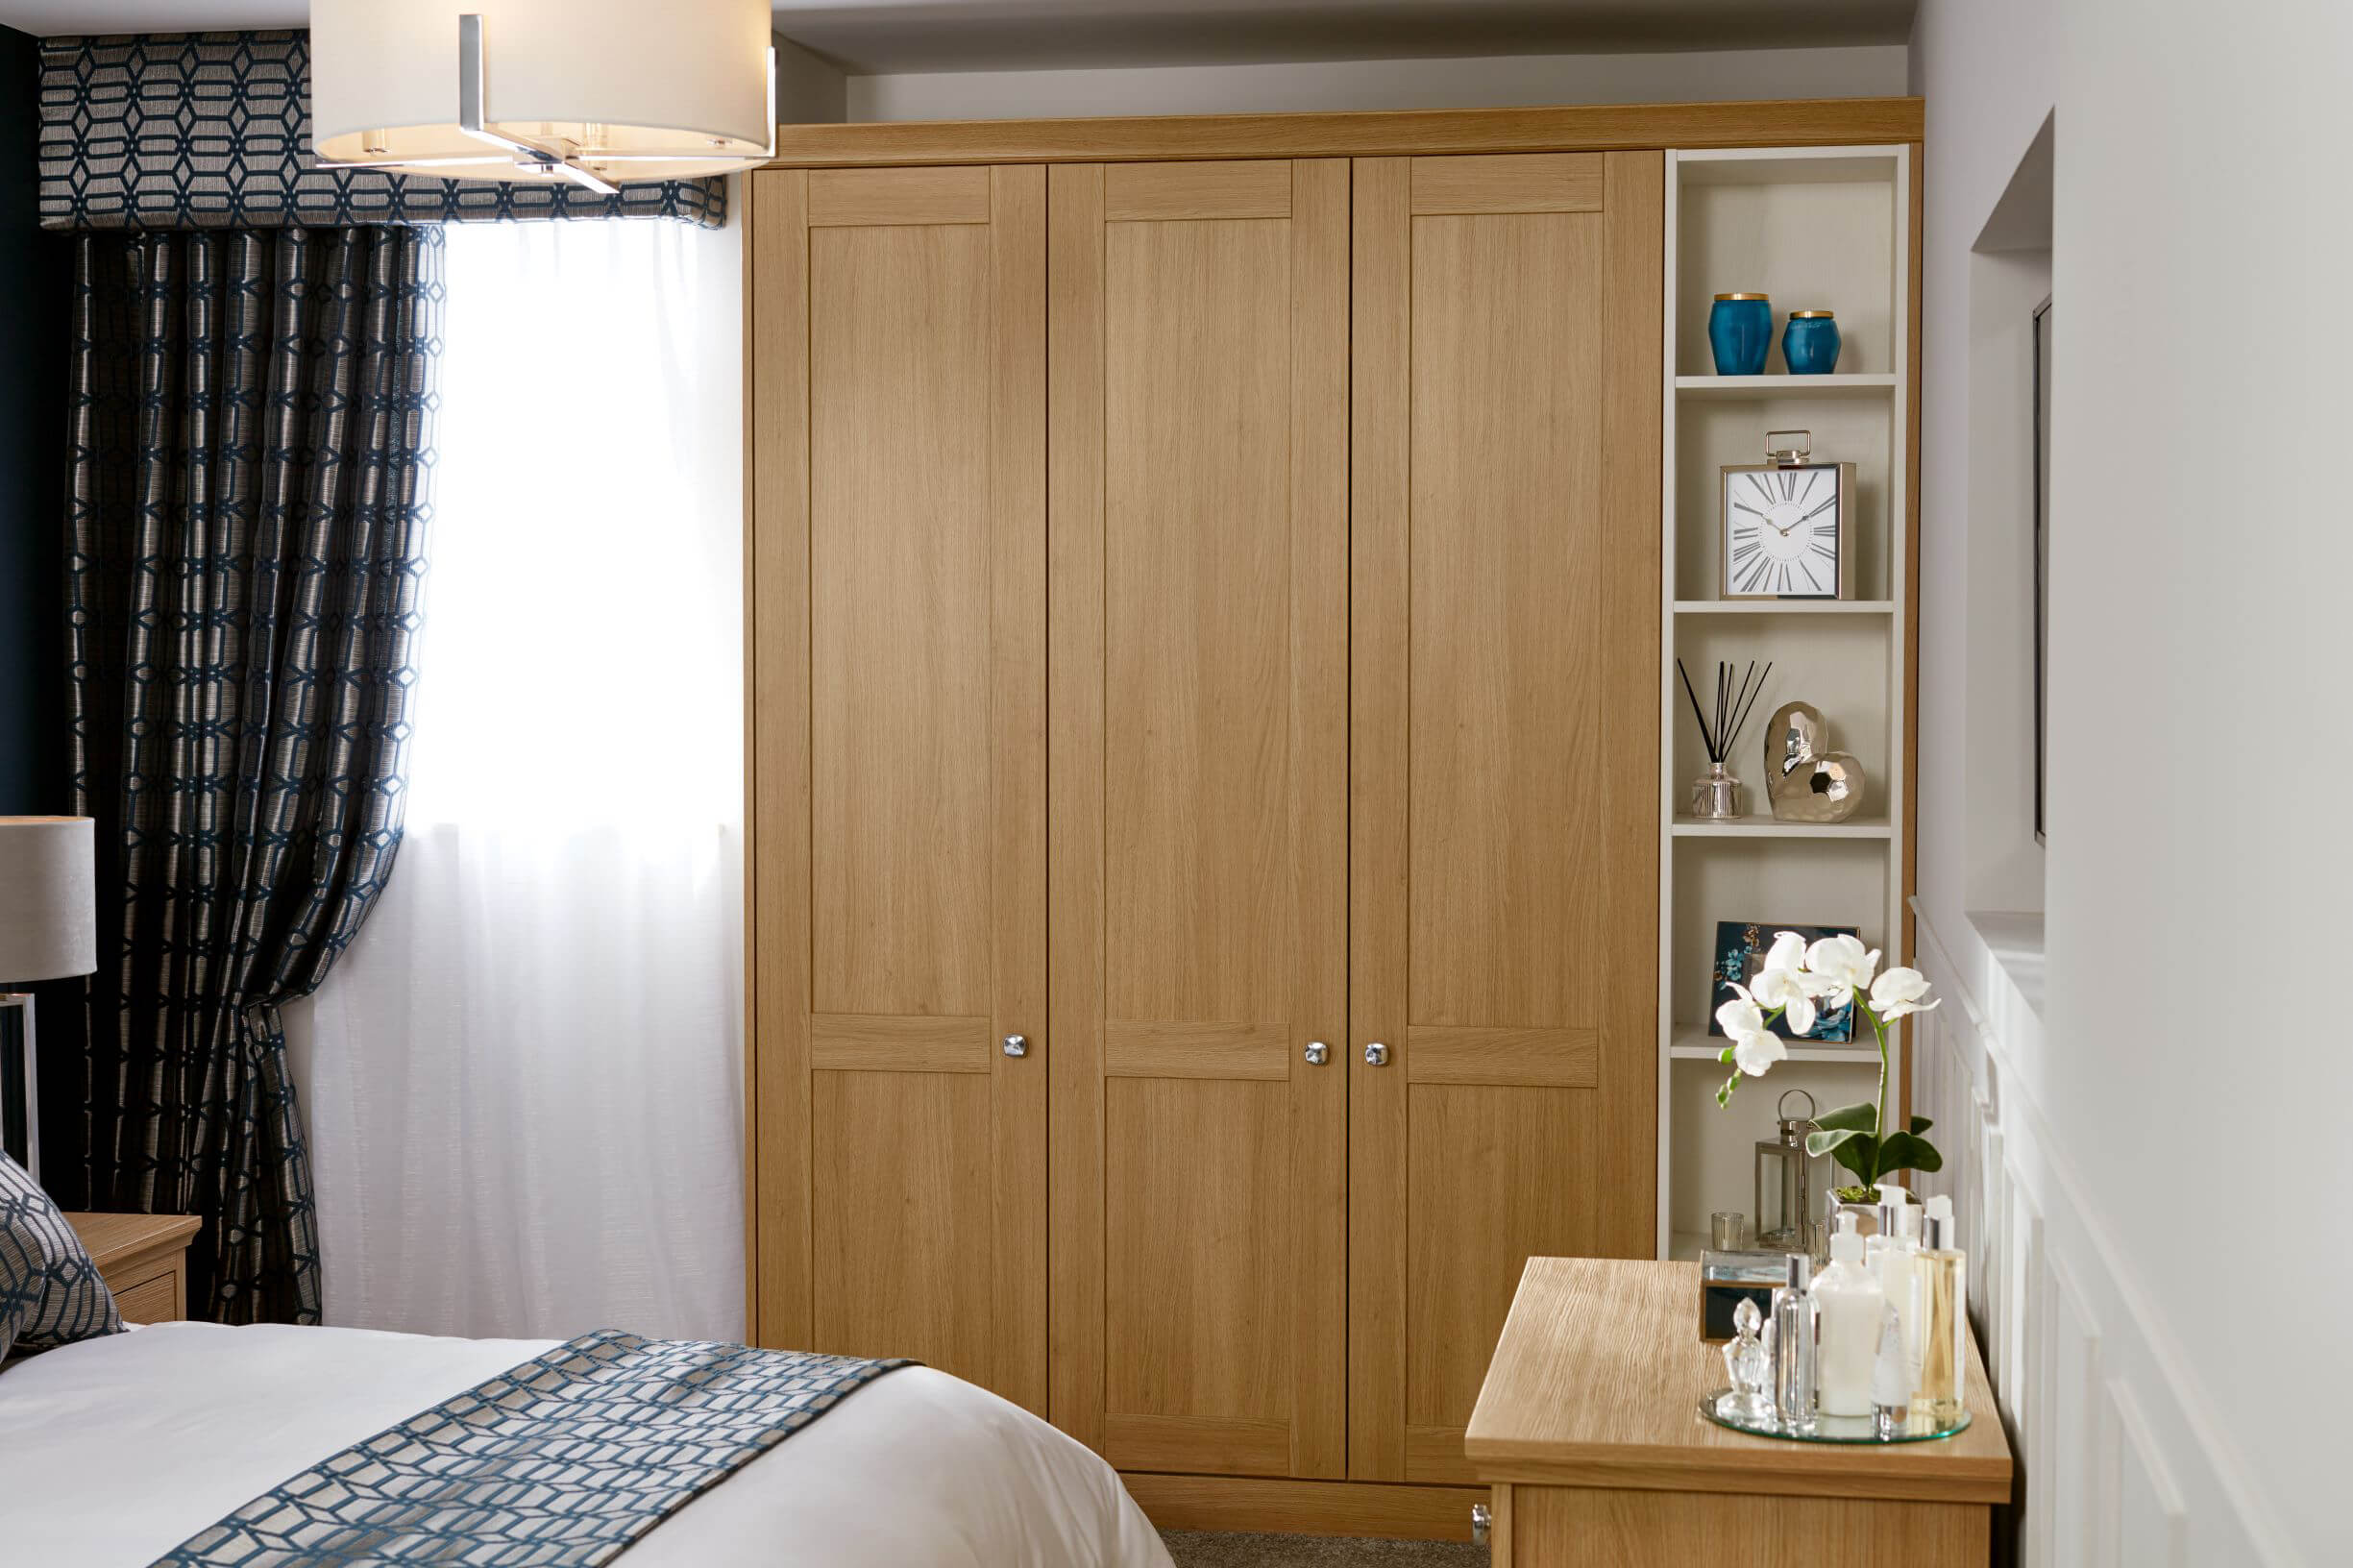 Kindred-Bedrooms-Origin-Gallery6